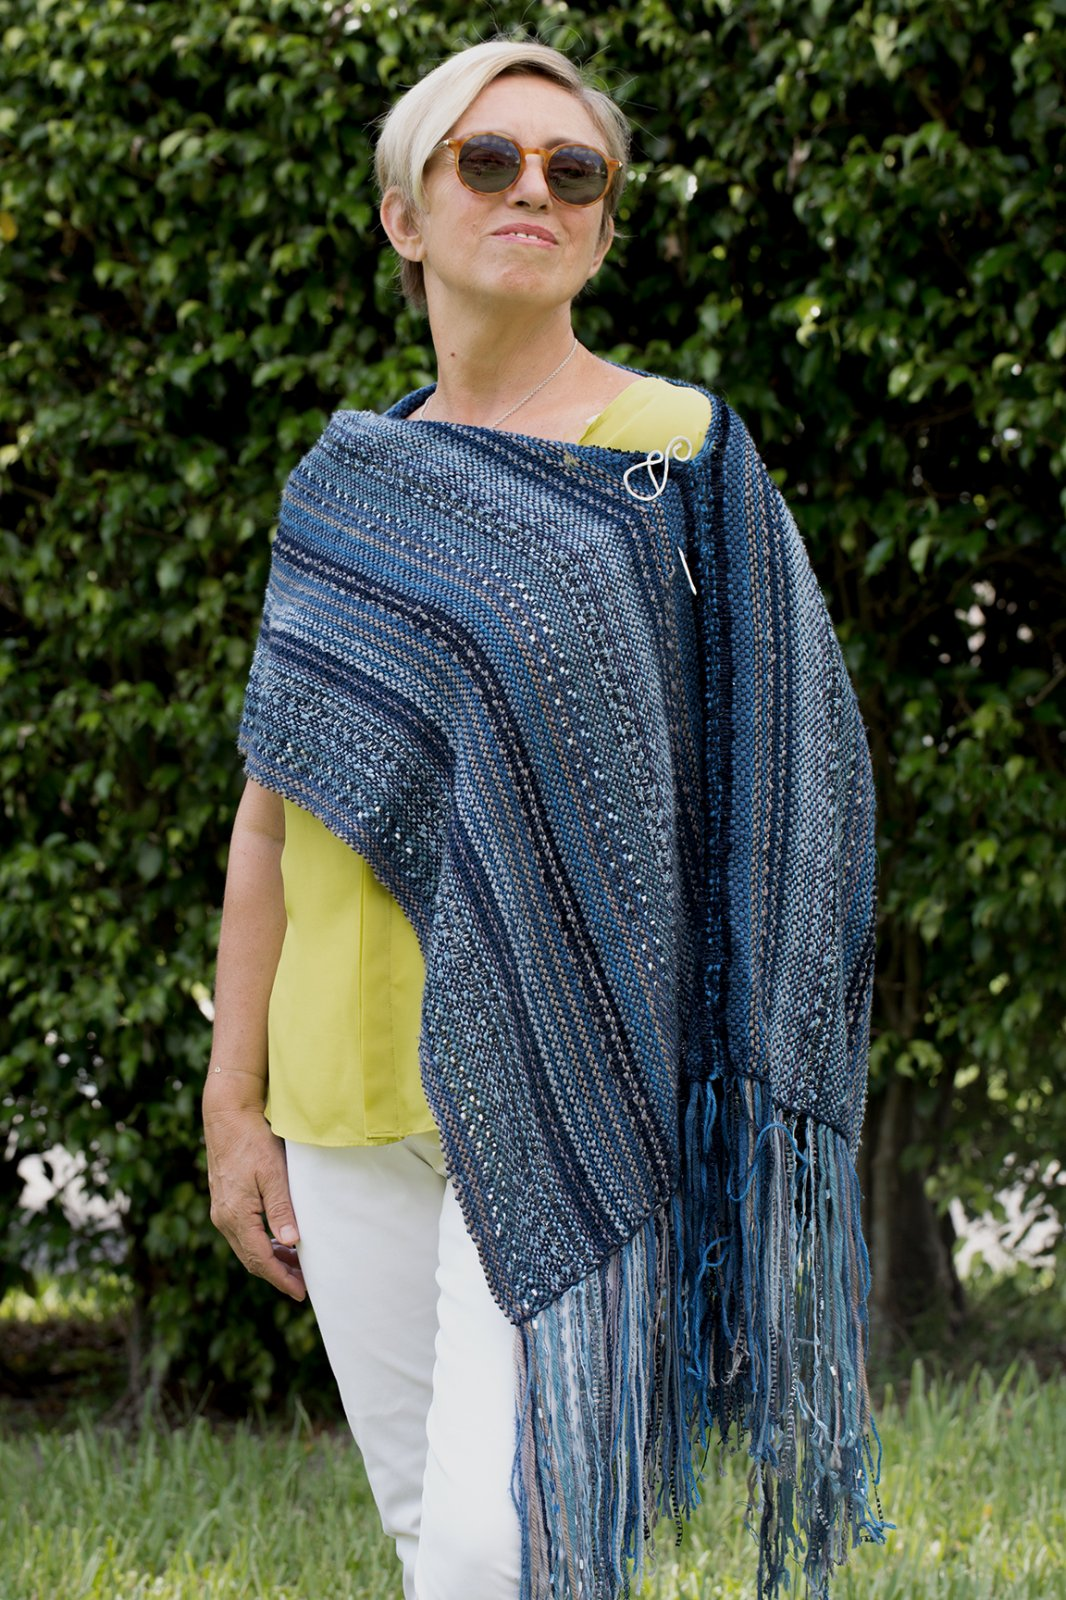 BoHo Shawl/Poncho Kit by Deborah Jarchow (A SHEEP THRILLS EXCLUSIVE)